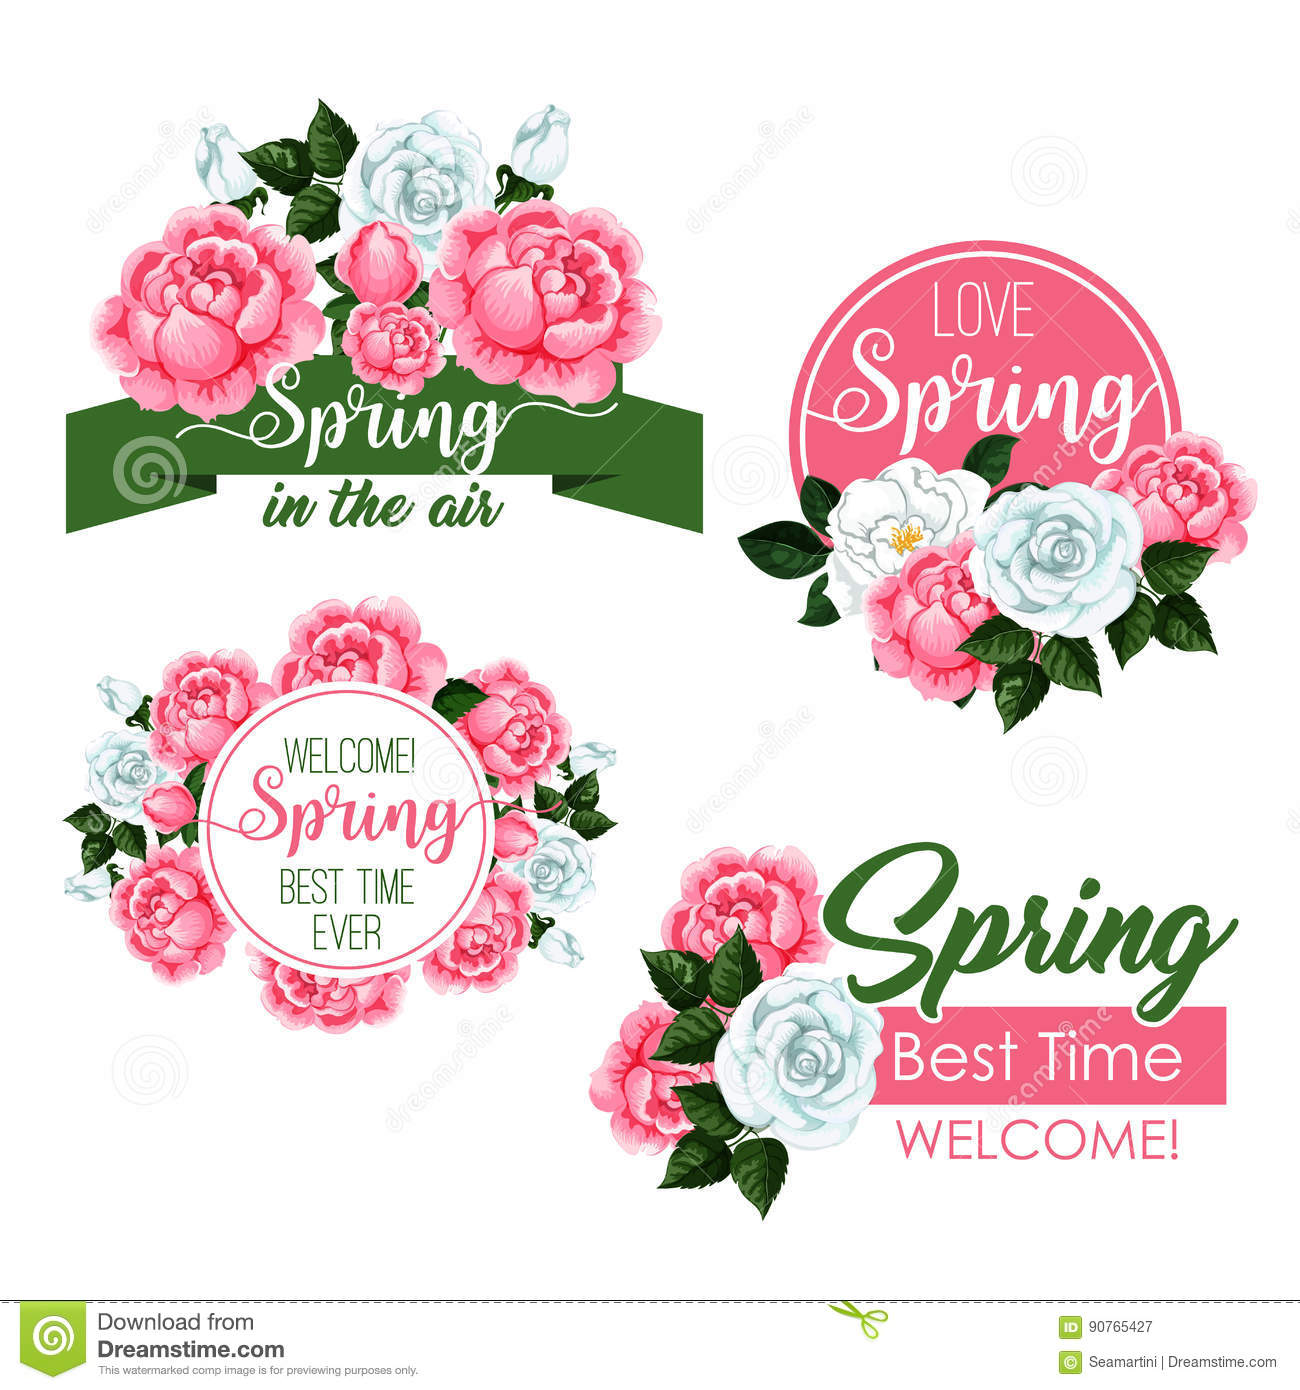 Vector spring time greeting quotes and flowers set stock vector download vector spring time greeting quotes and flowers set stock vector illustration of design mightylinksfo